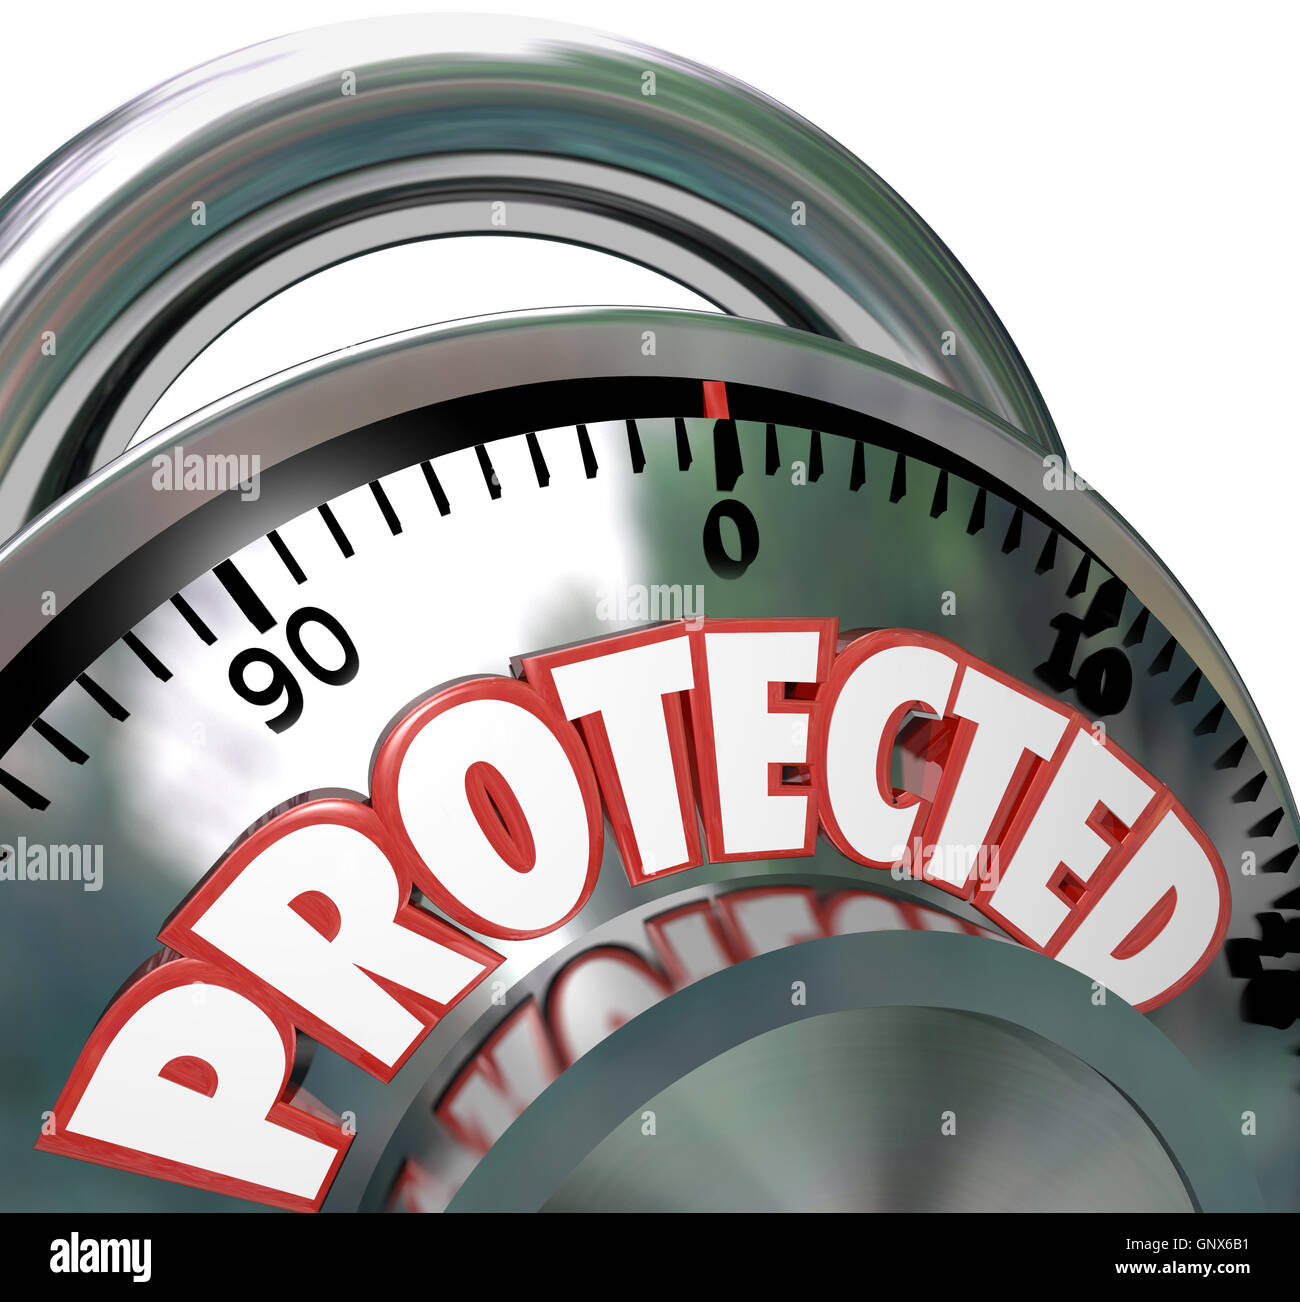 Protected Combination Lock Security Protection - Stock Image